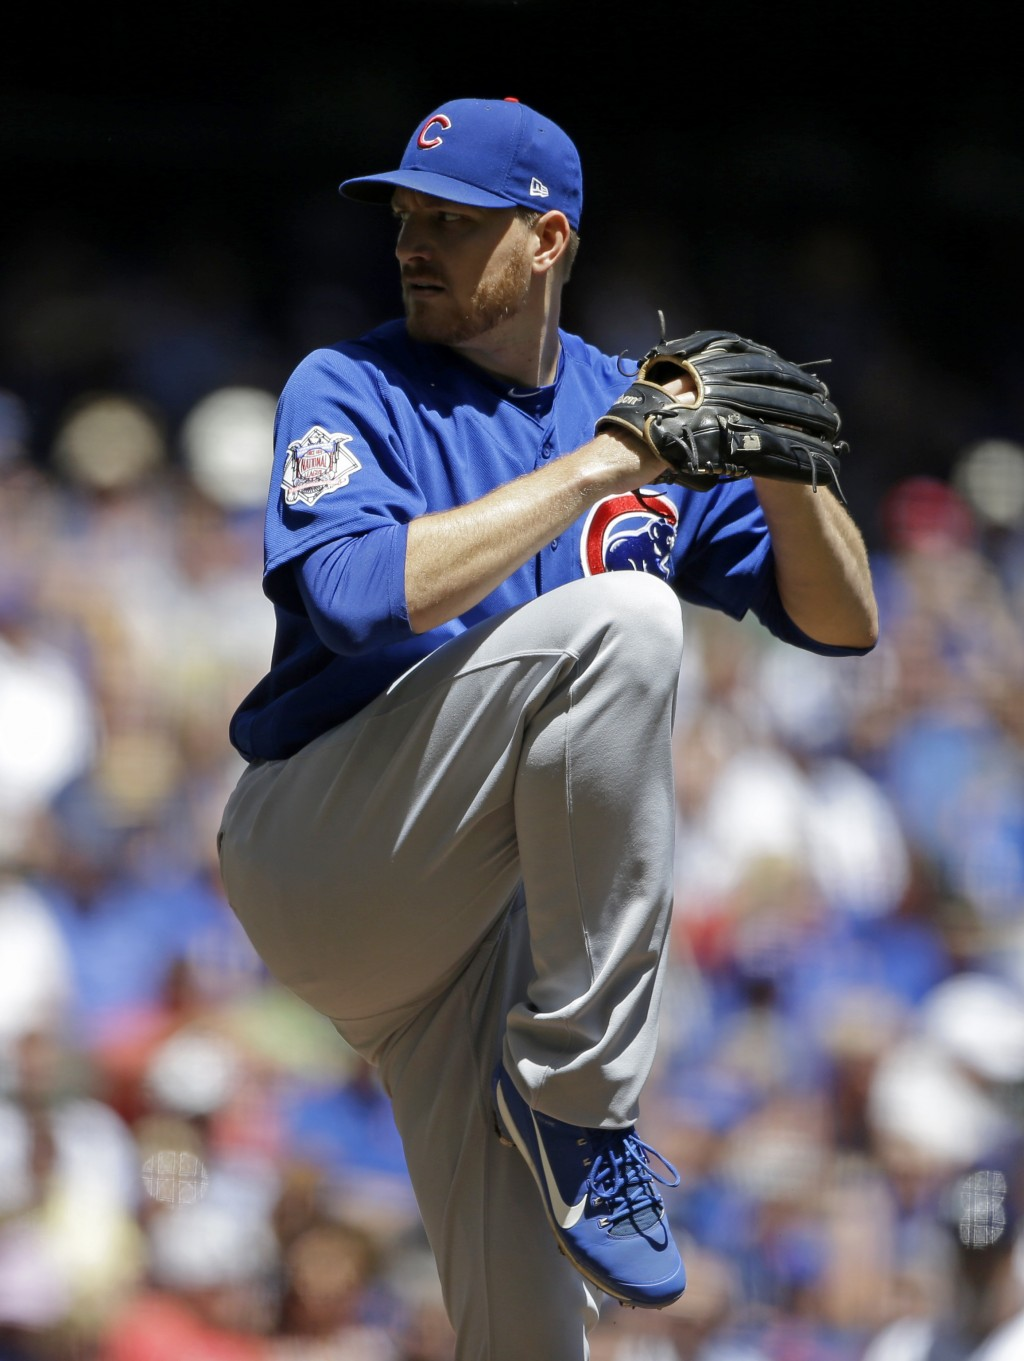 Chicago Cubs' Mike Montgomery pitches during the first inning of a baseball game against the Milwaukee Brewers Wednesday, June 13, 2018, in Milwaukee.